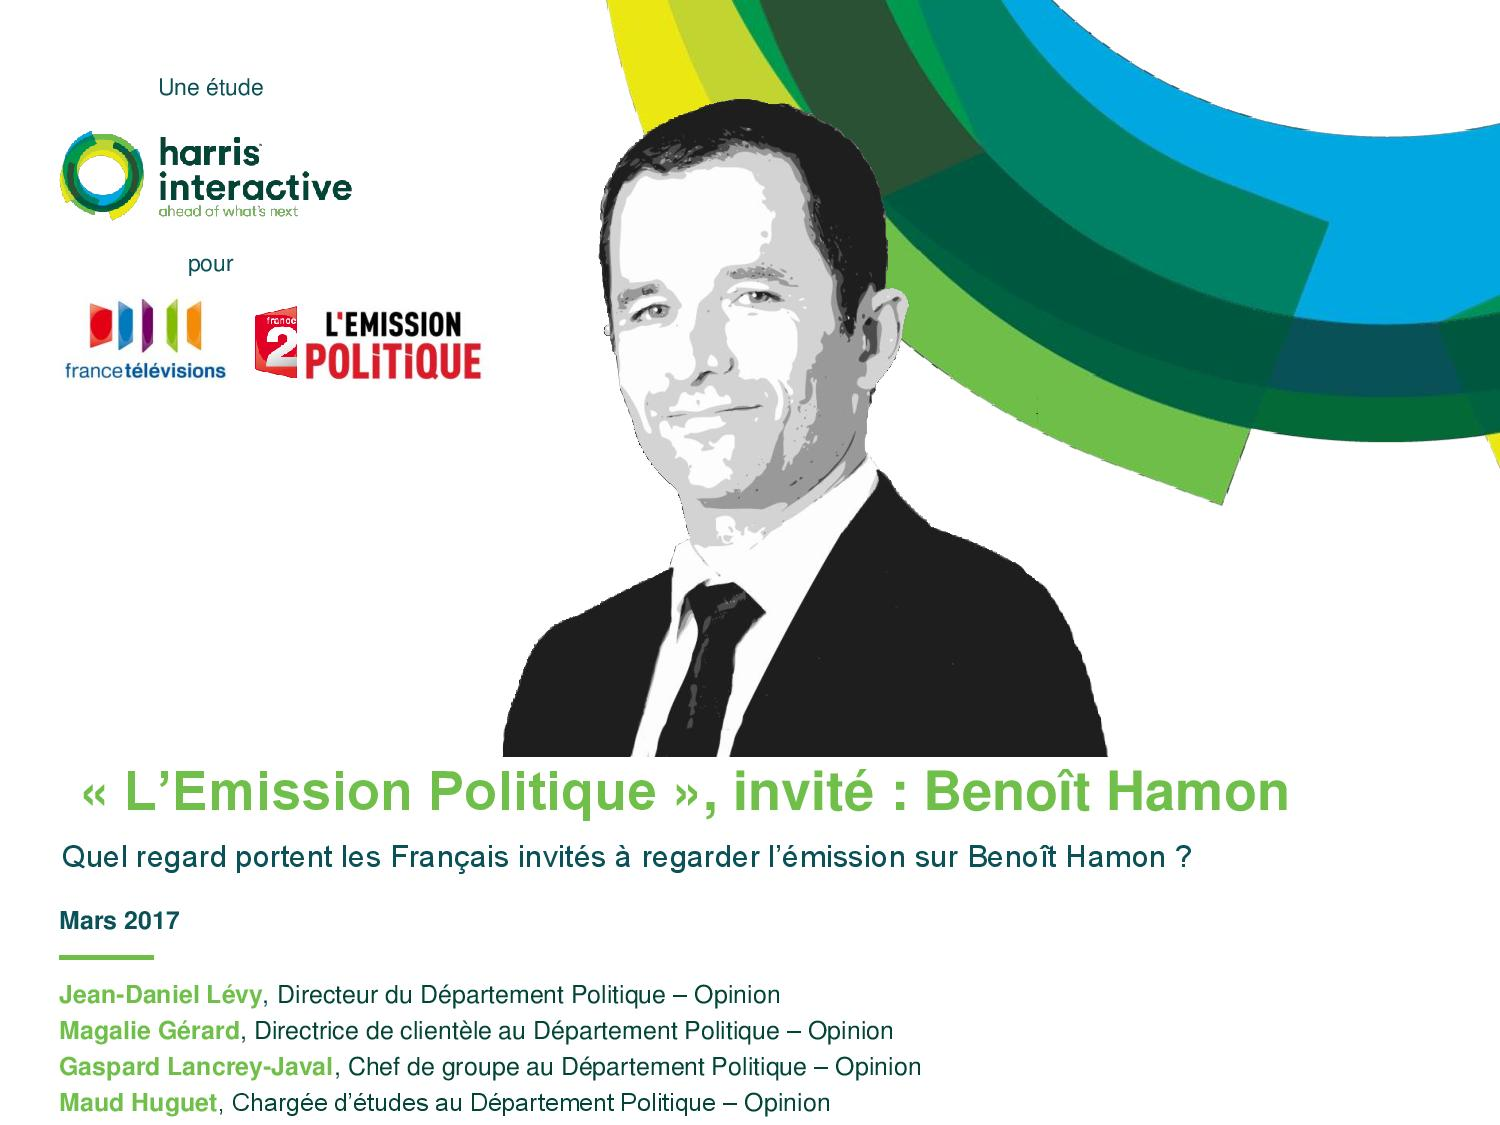 Rapport-Harris-Emission-Politique-0903-Benoit-HAMON-France Televisions---page-001